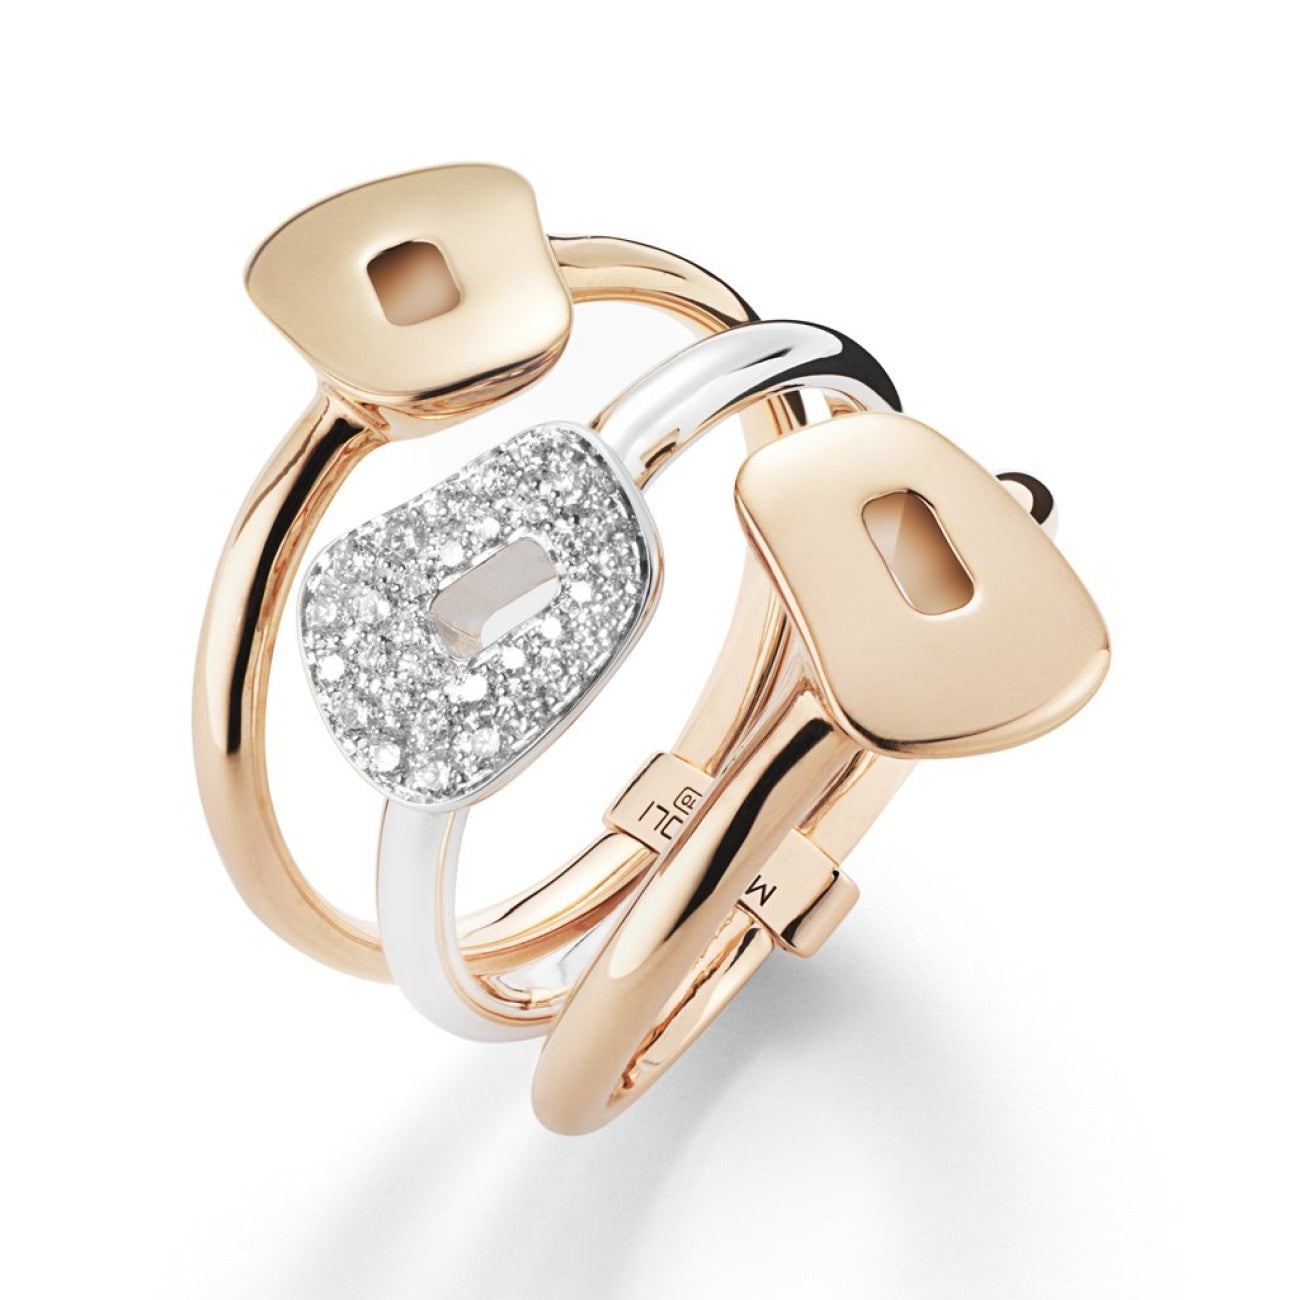 Mattioli Jewelry - Puzzle ring in white gold rose gold and white diamonds (3 elements) | Manfredi Jewels